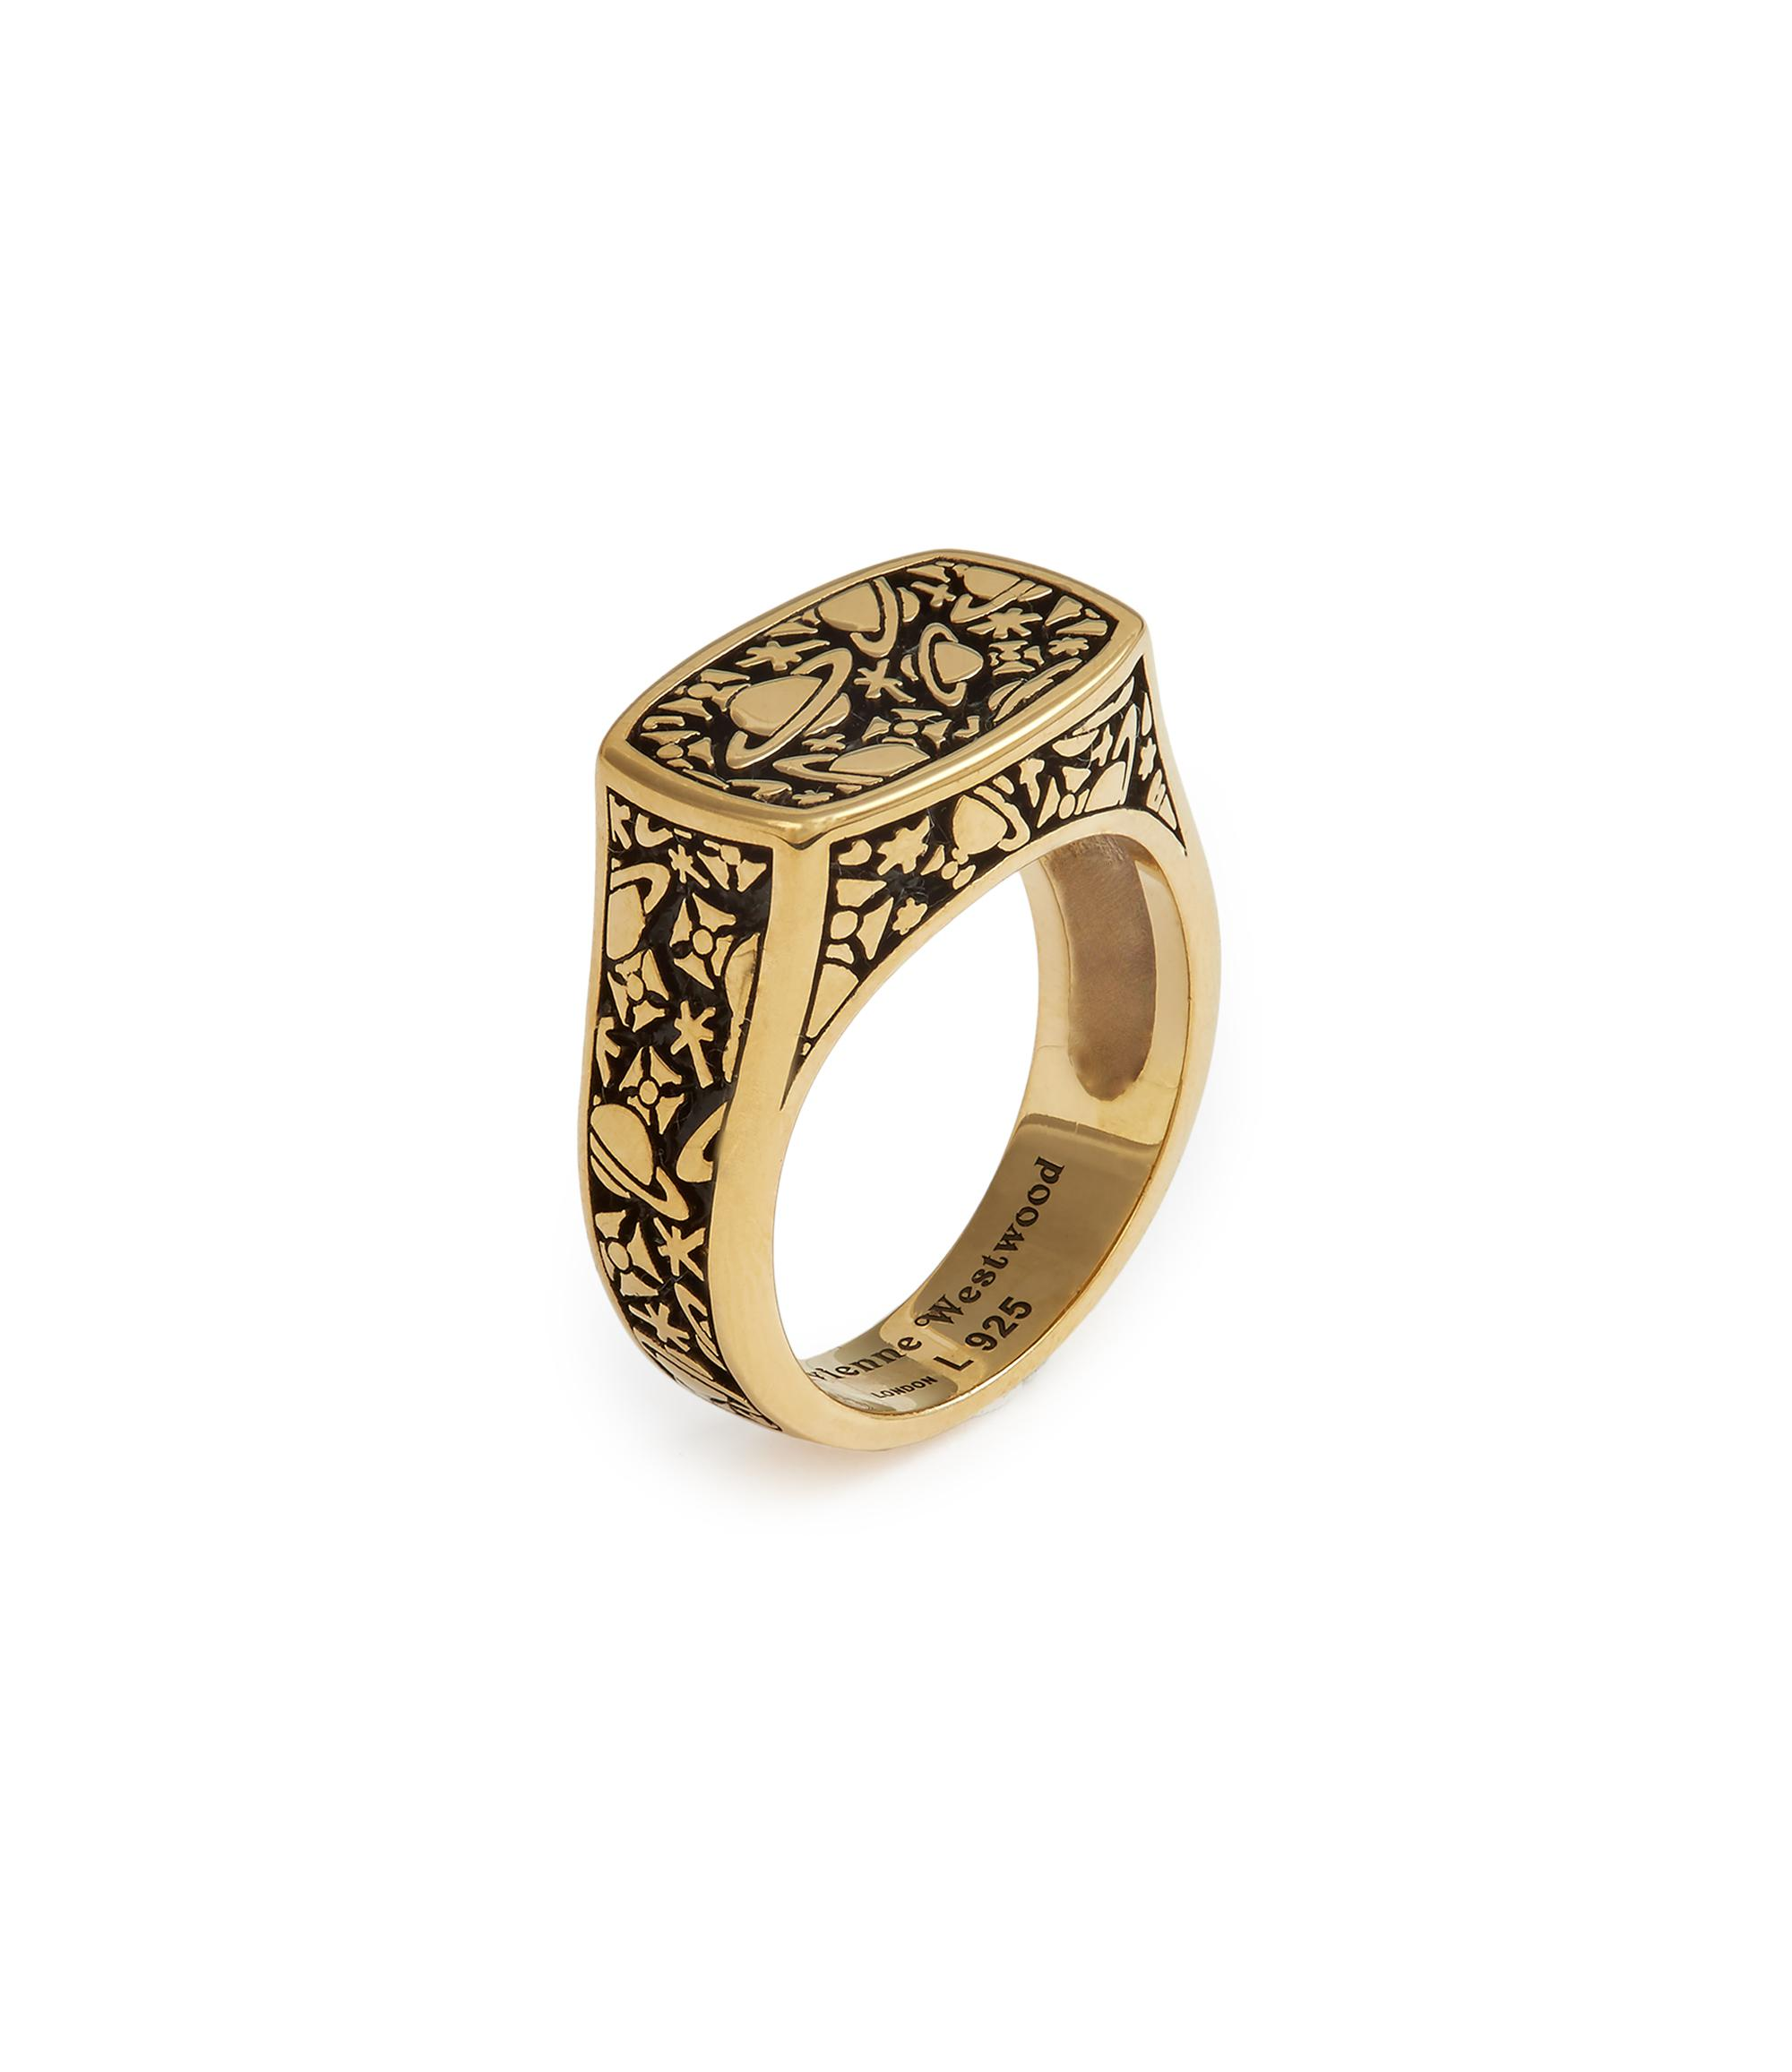 gold jewelry free ring download imgs images png earnings